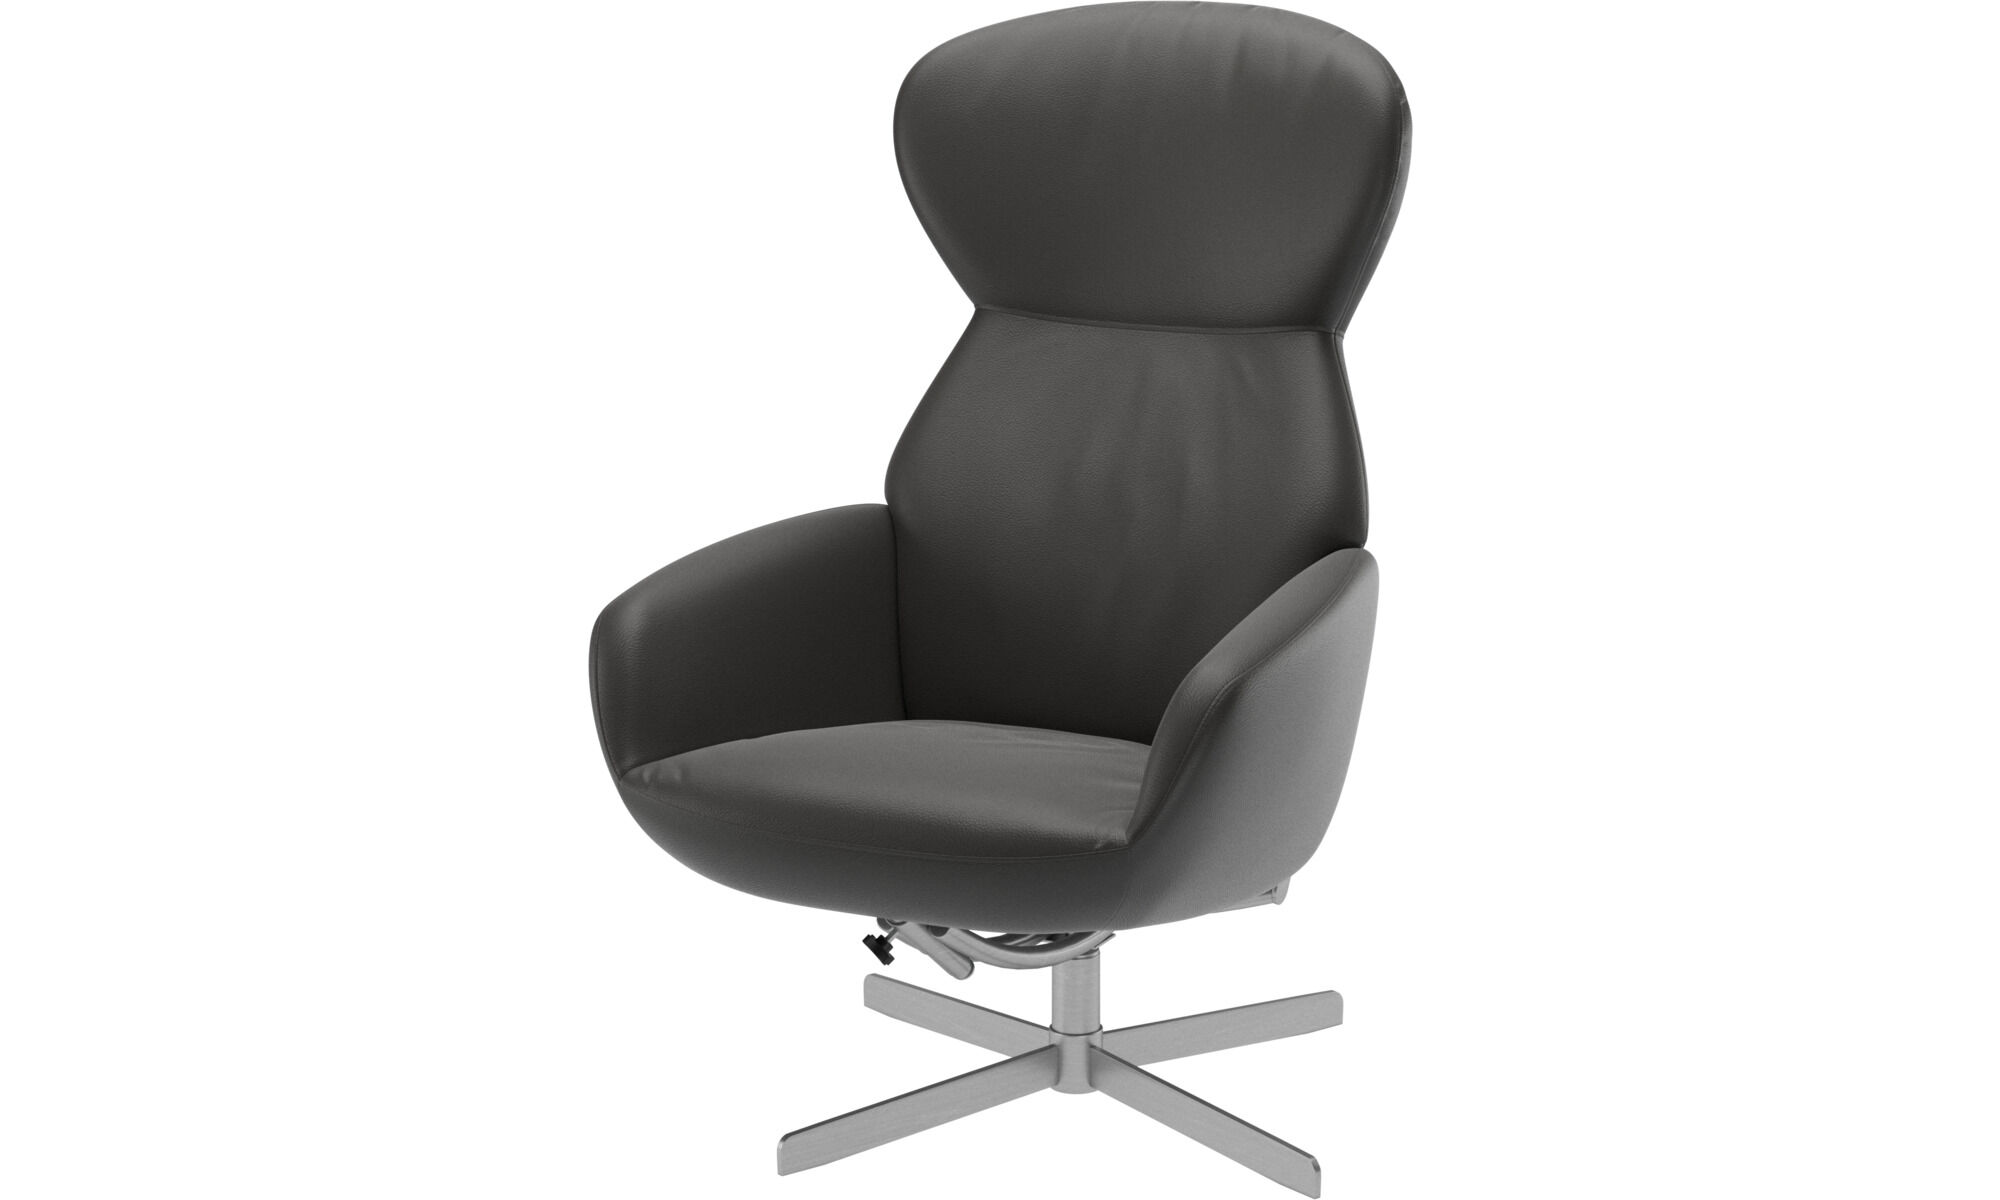 Delightful Armchairs   Athena Chair With Reclining Back Function And Swivel Base    Gray   Leather ...